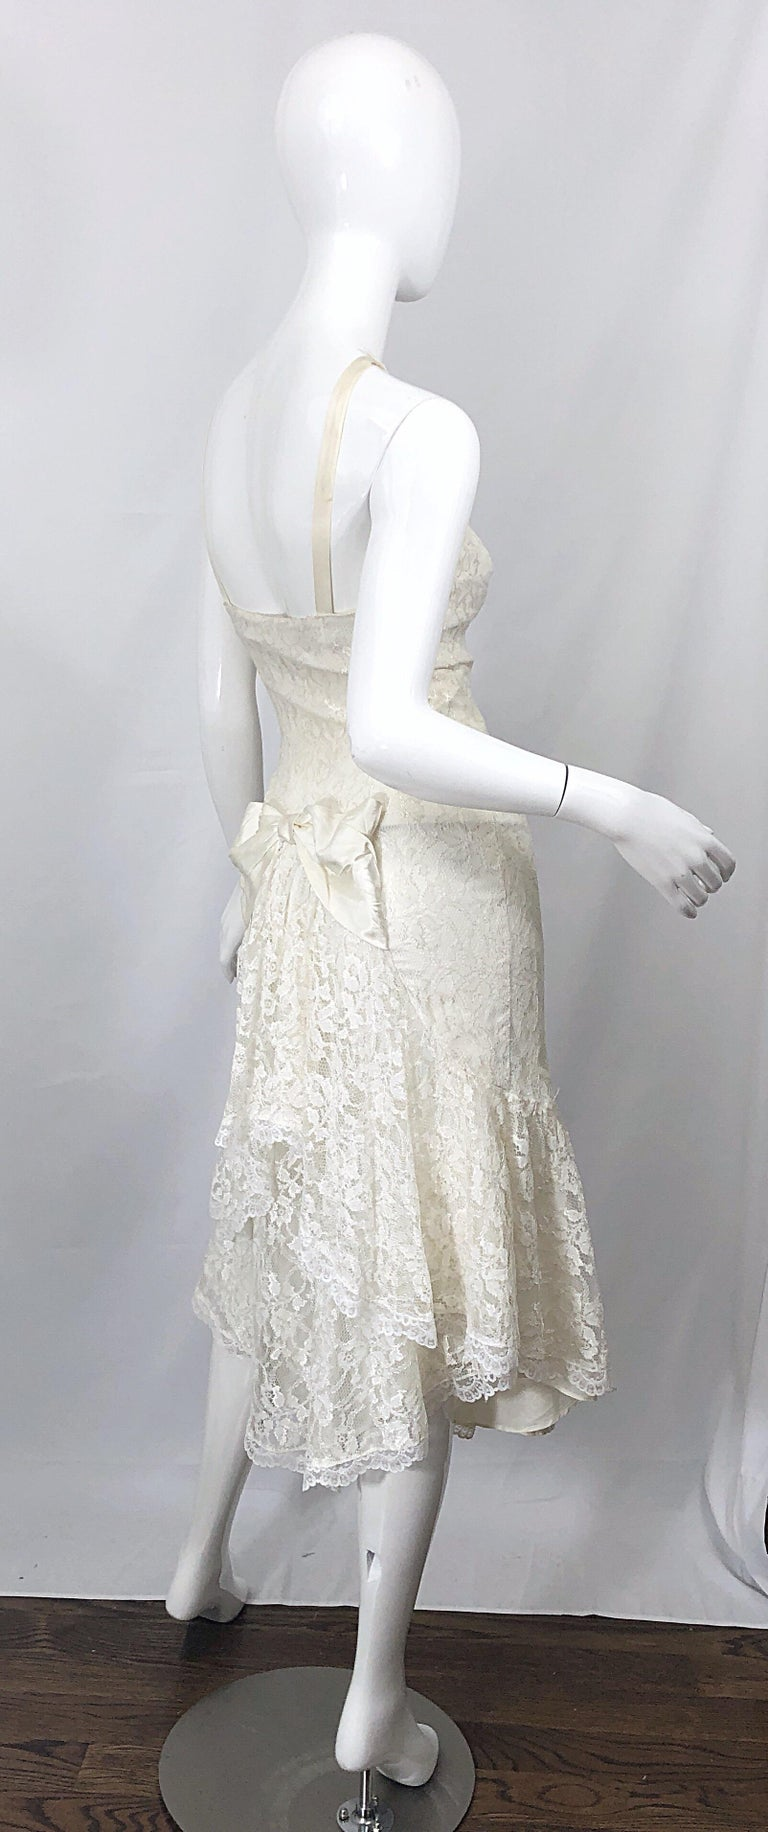 1980s Samir Ivory White Lace Handkerchief Hem Embroidered Vintage 80s Dress For Sale 8